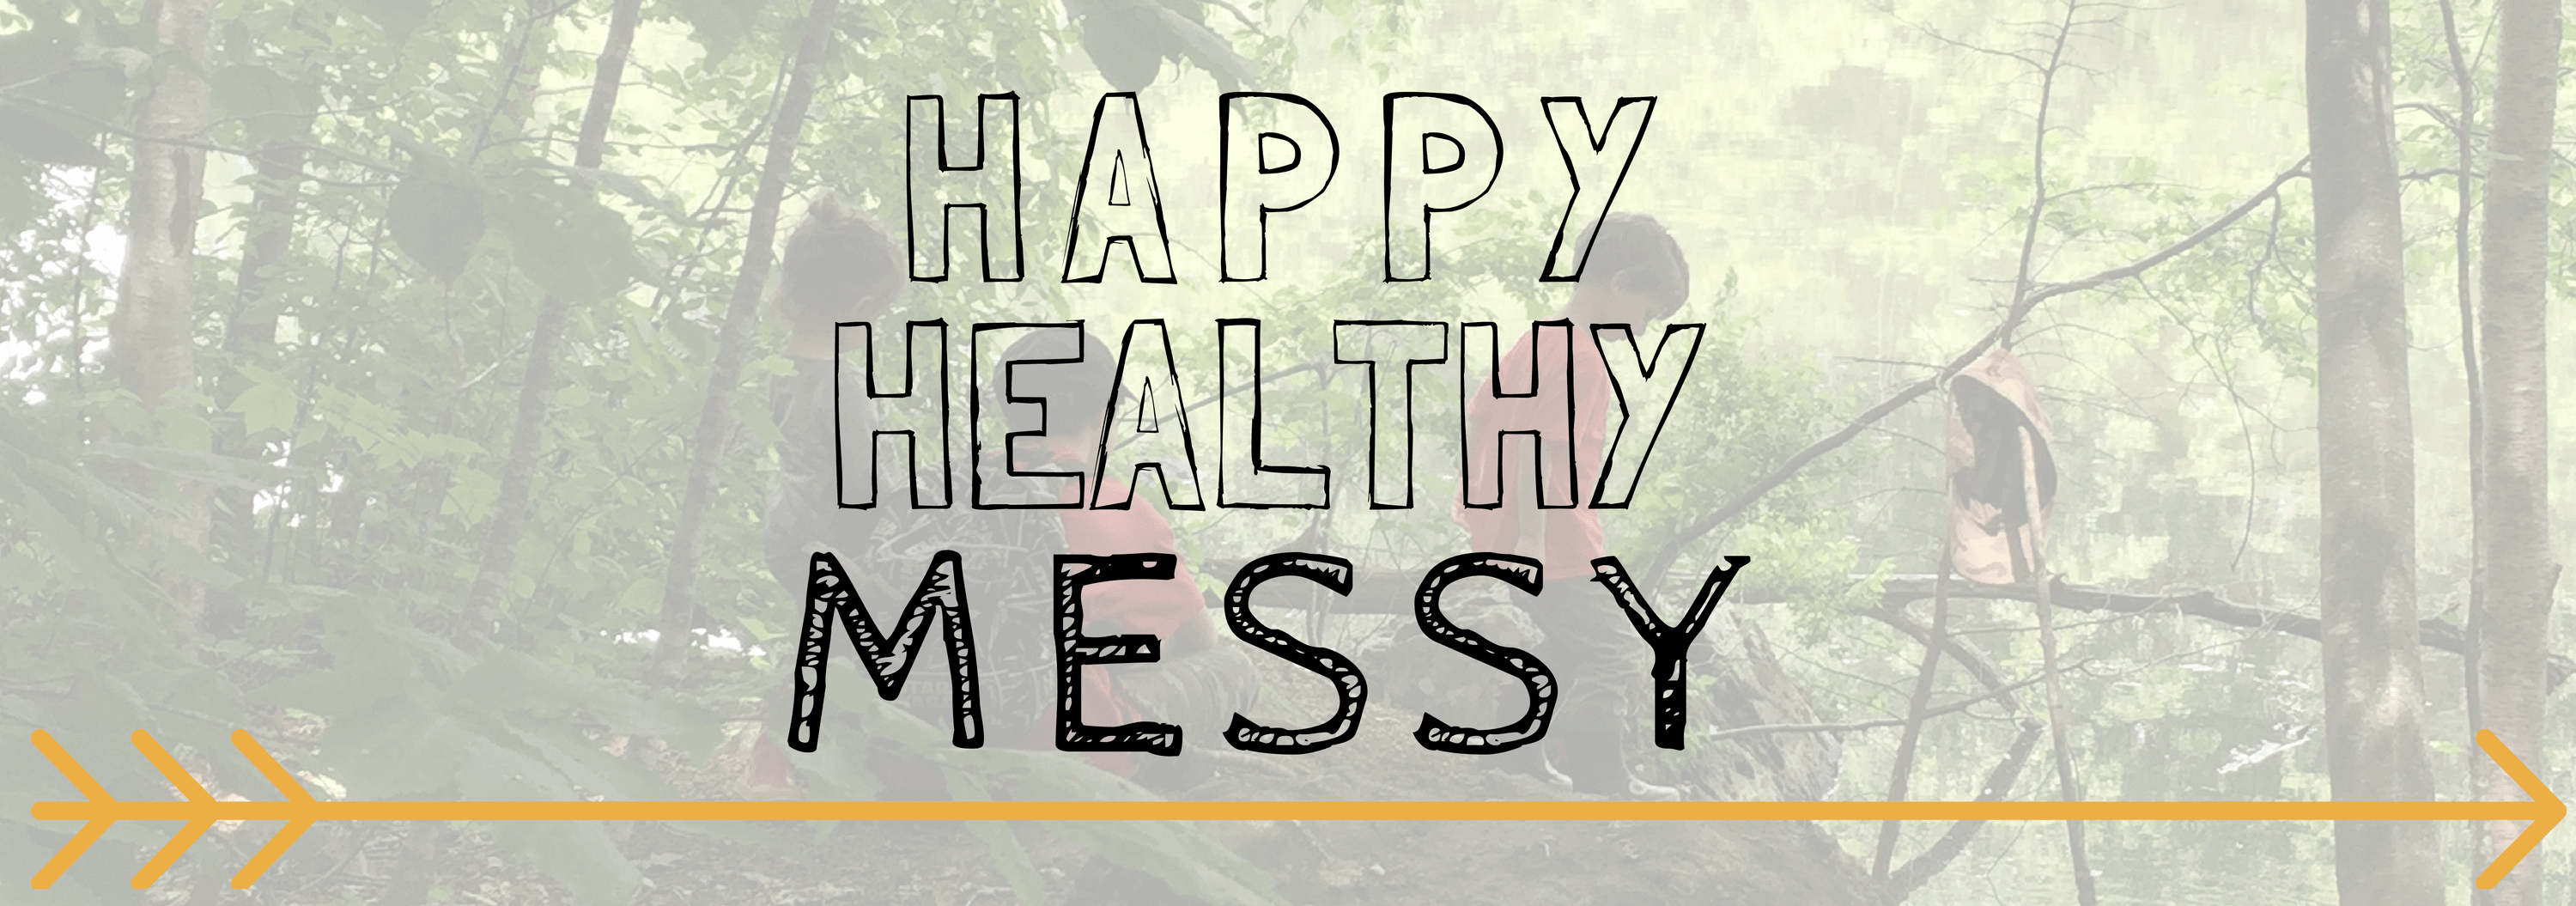 Happy Healthy Messy